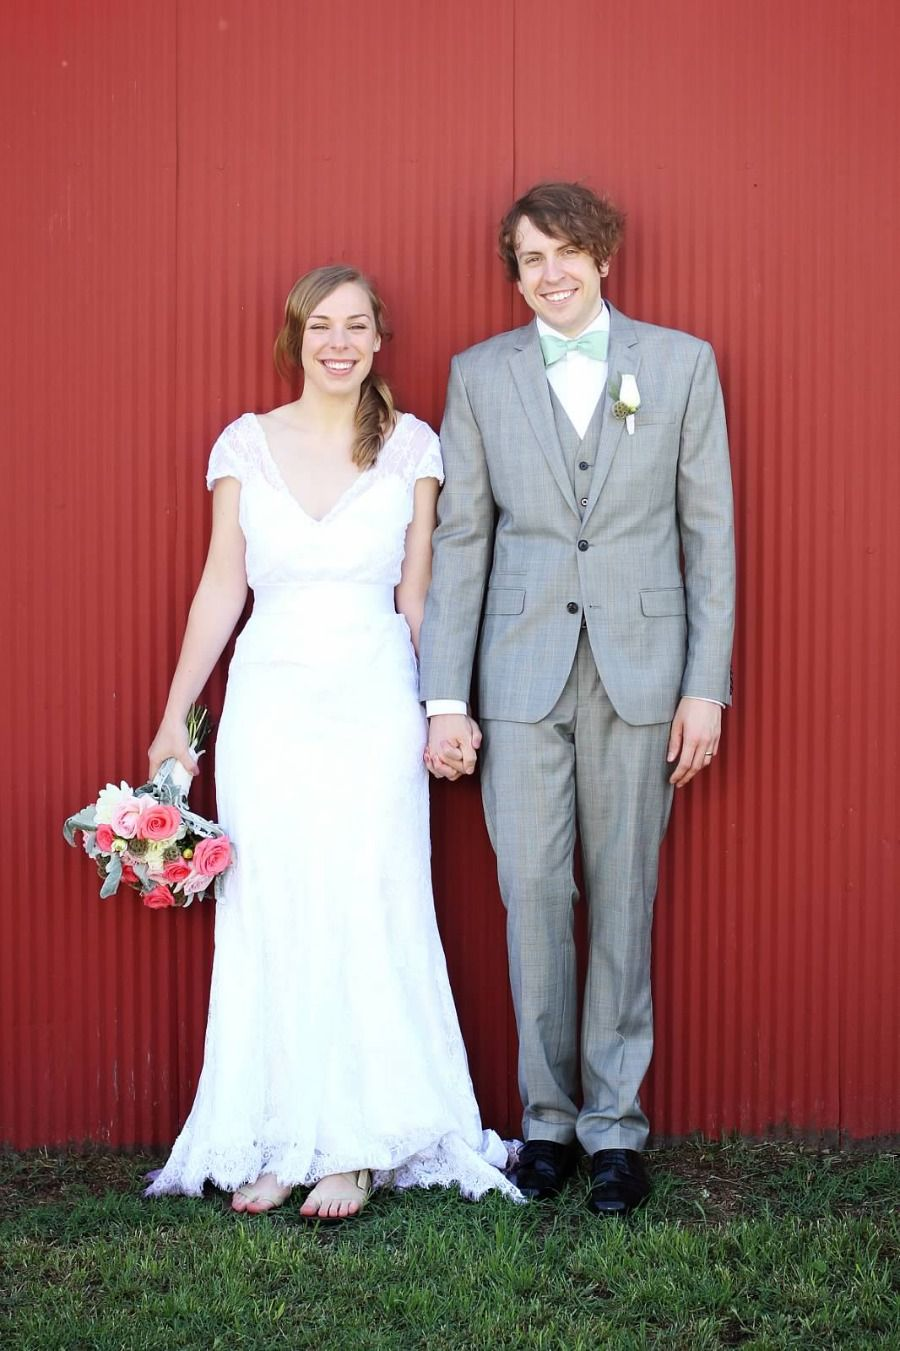 The groom is in vintage style with a light grey suite and vest with